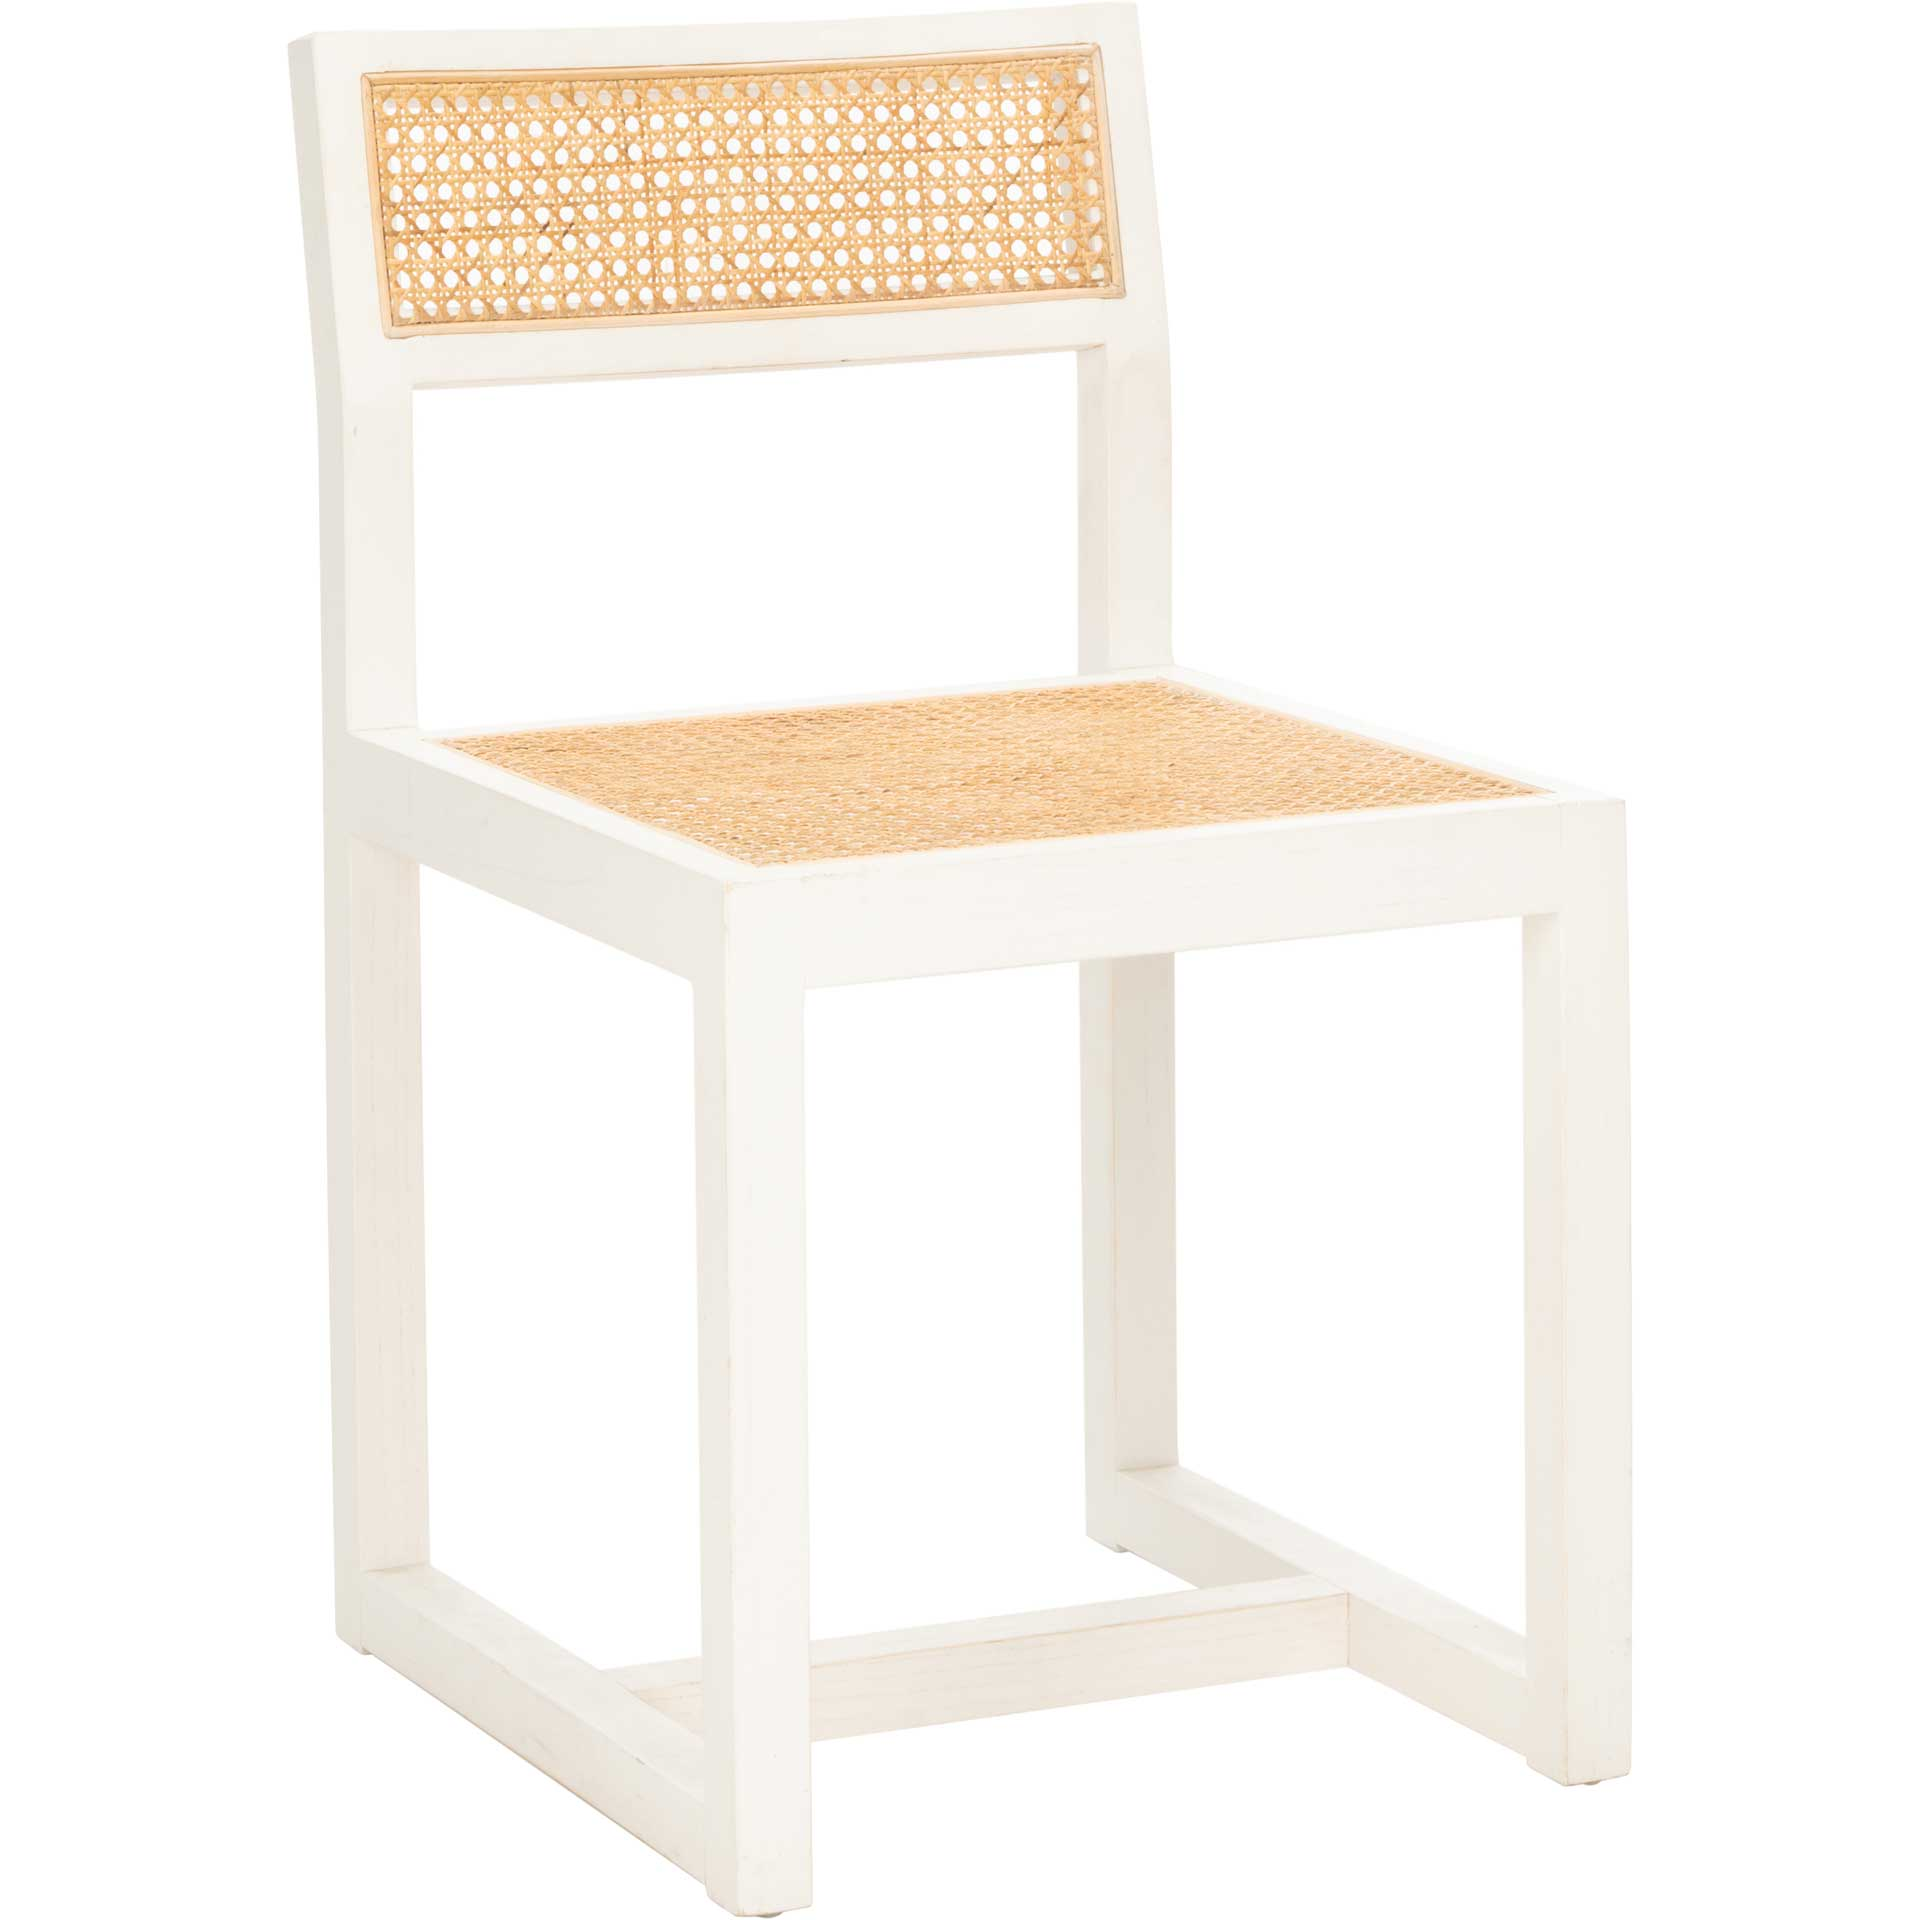 Bellini Cane Dining Chair White/Natural